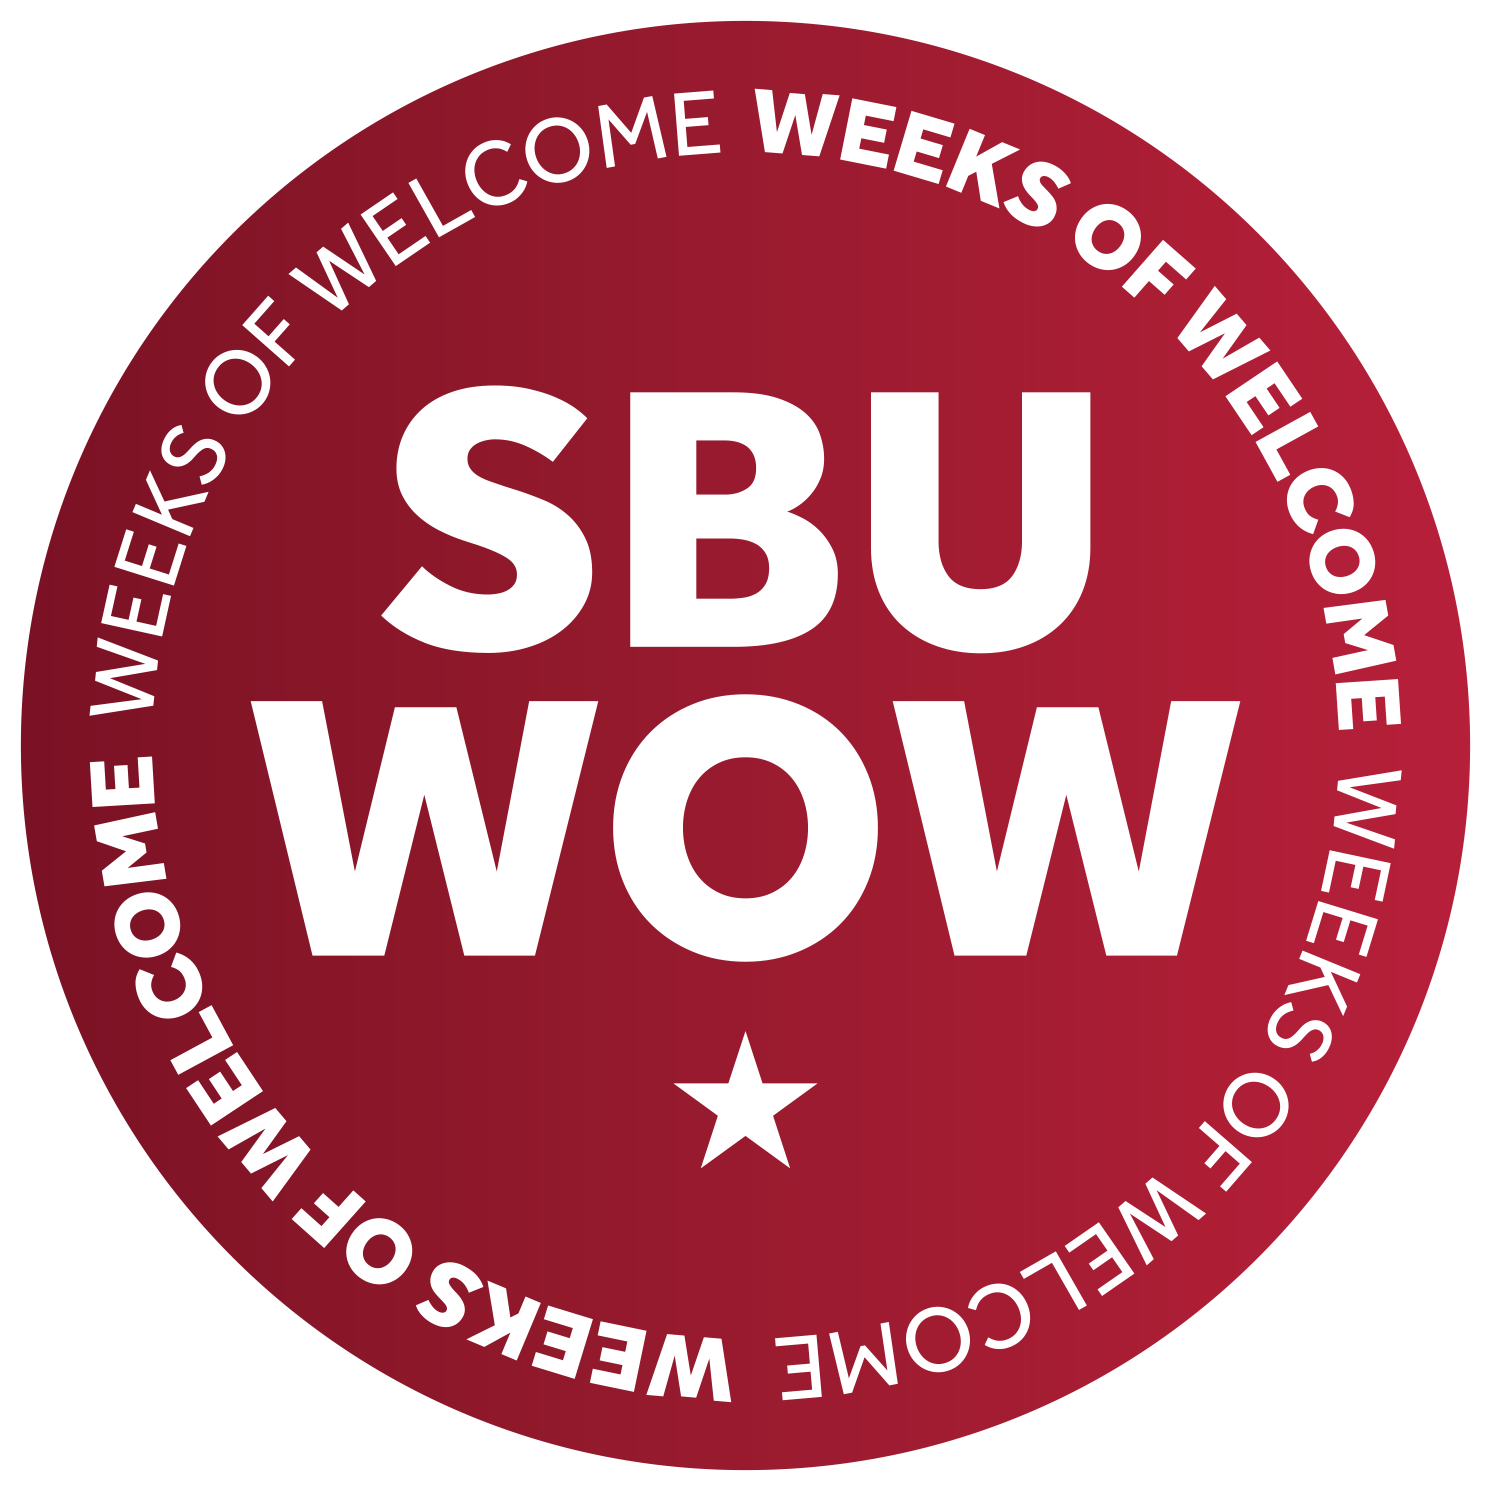 SBU Weeks of Welcome or SBU WOW is an initiative focused on introducing new students to campus life during opening weekend but also ensuring the start of the semester is vibrant and engaging for all students